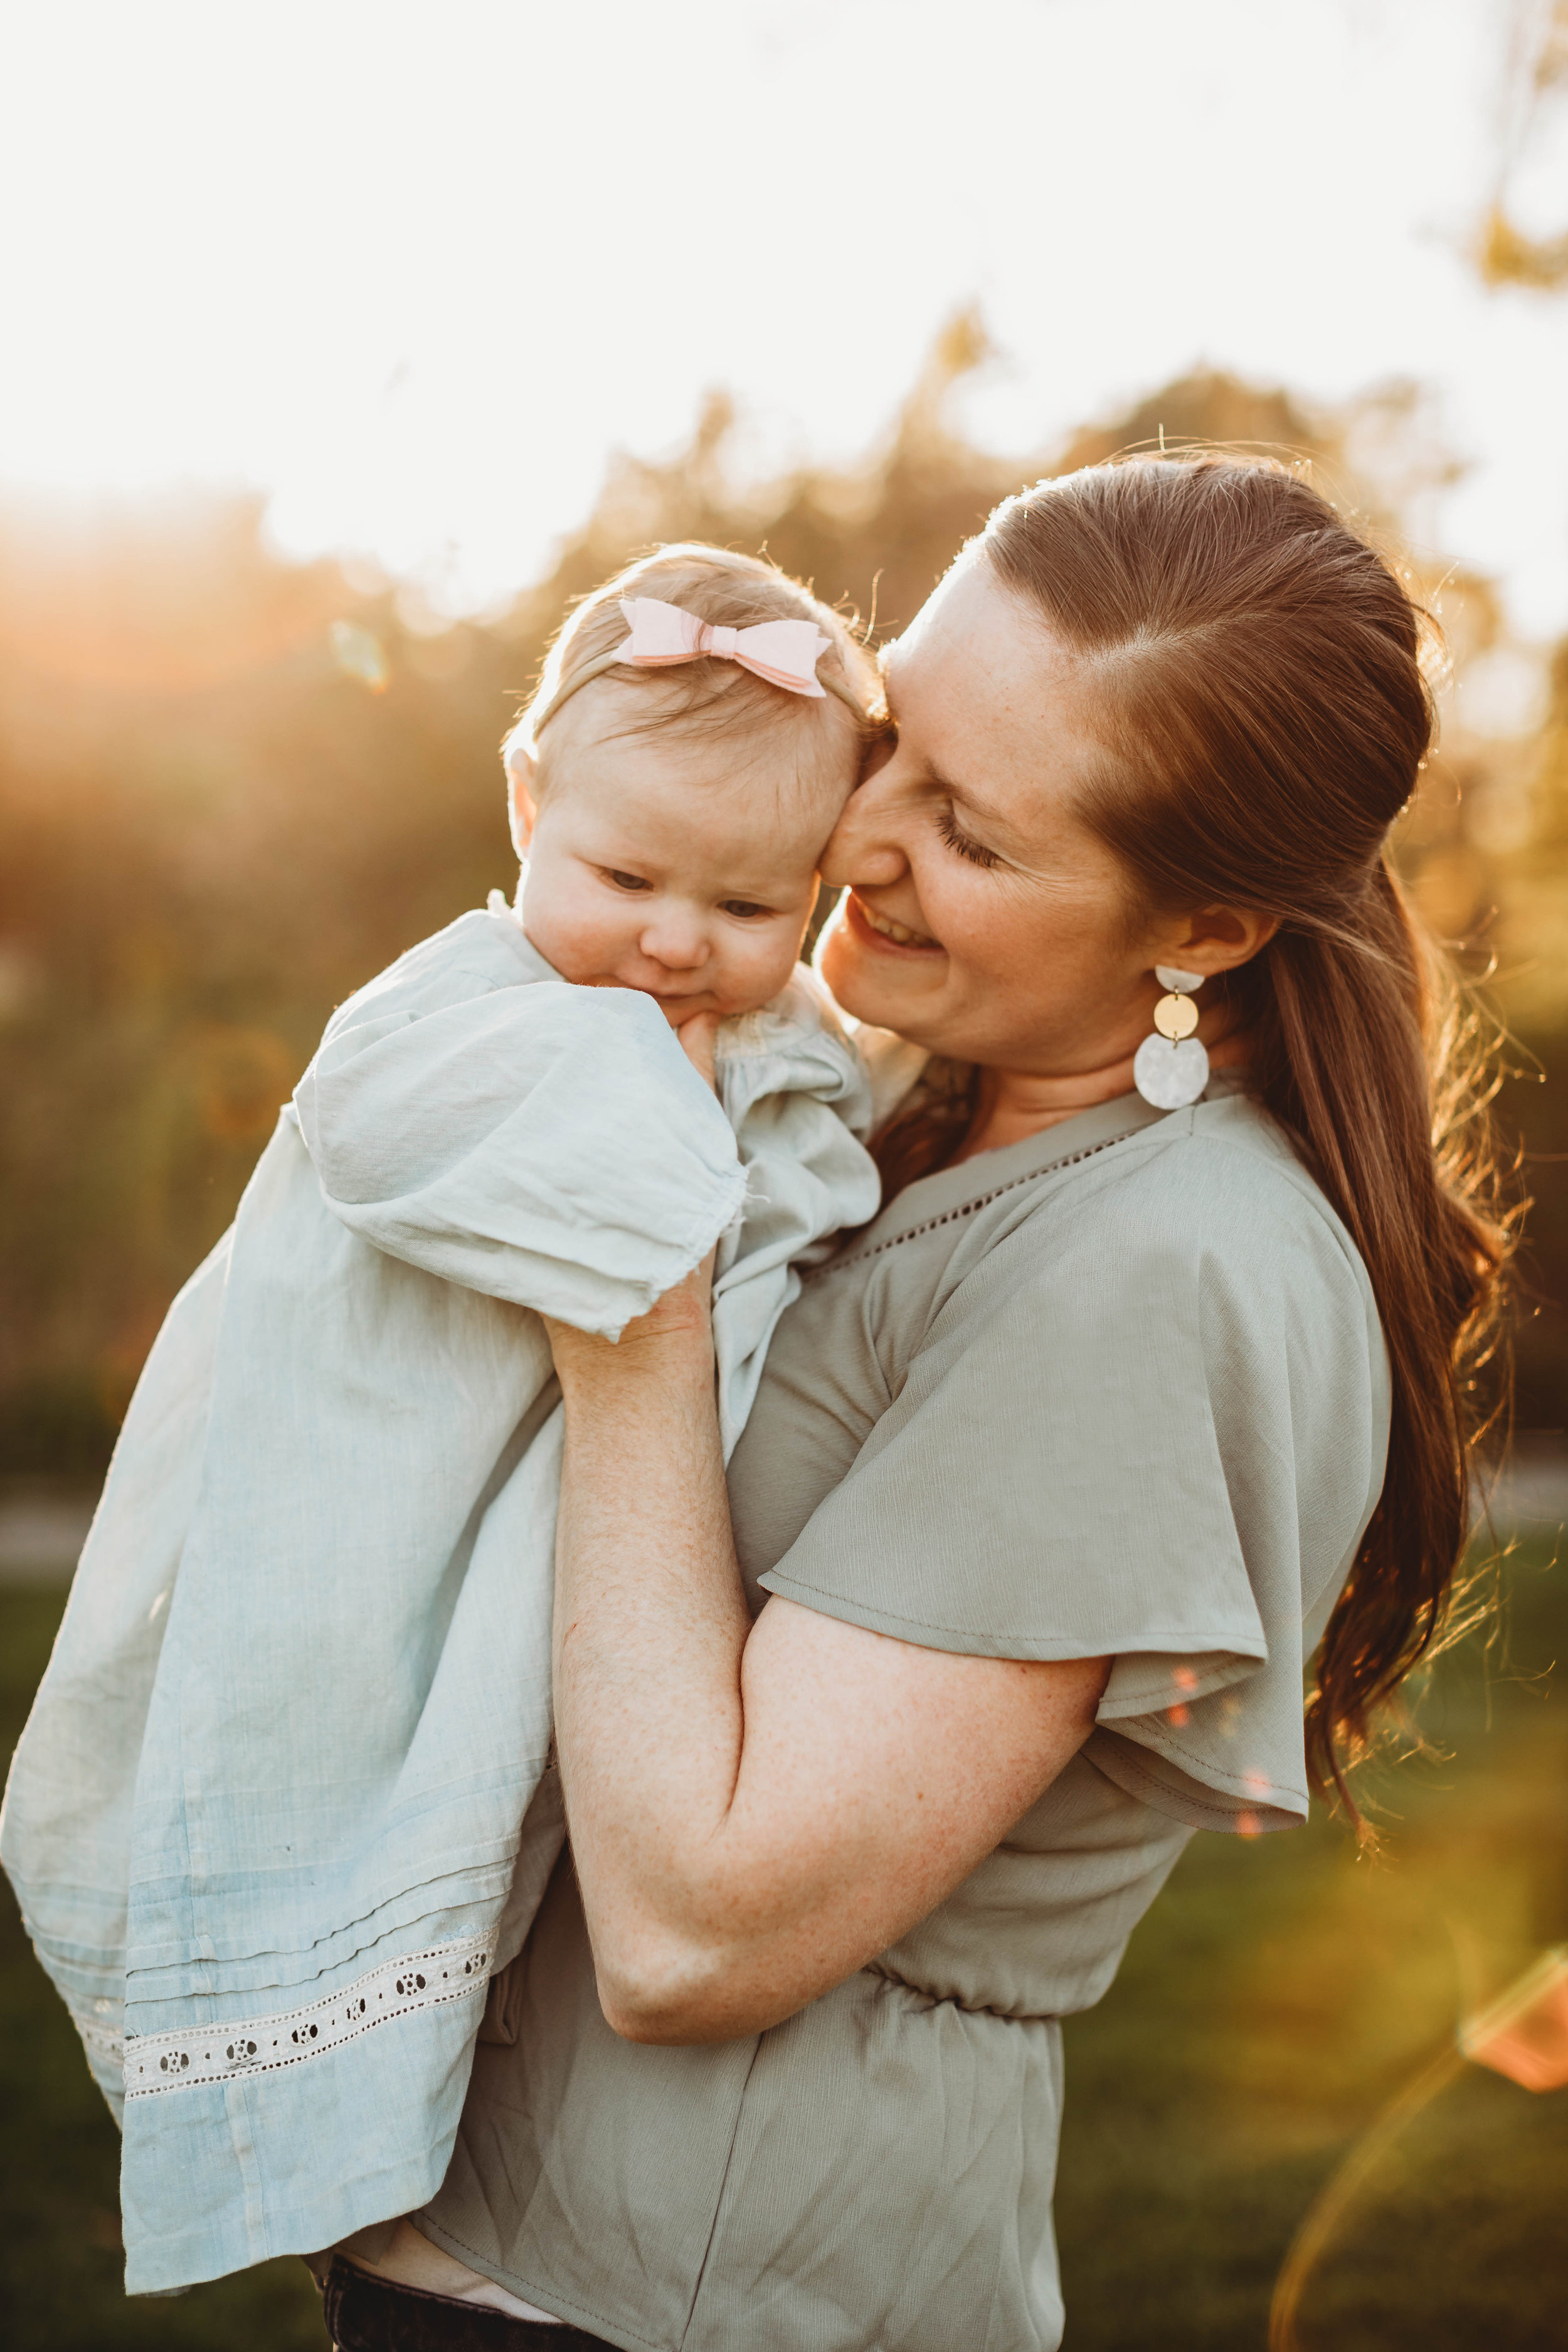 Putting babies in antique hand-me-downs from older generations is a beautiful way to incorporate family history into portraits. Acton Arboretum golden hour family portraits. Boston family photographer Joy LeDuc.